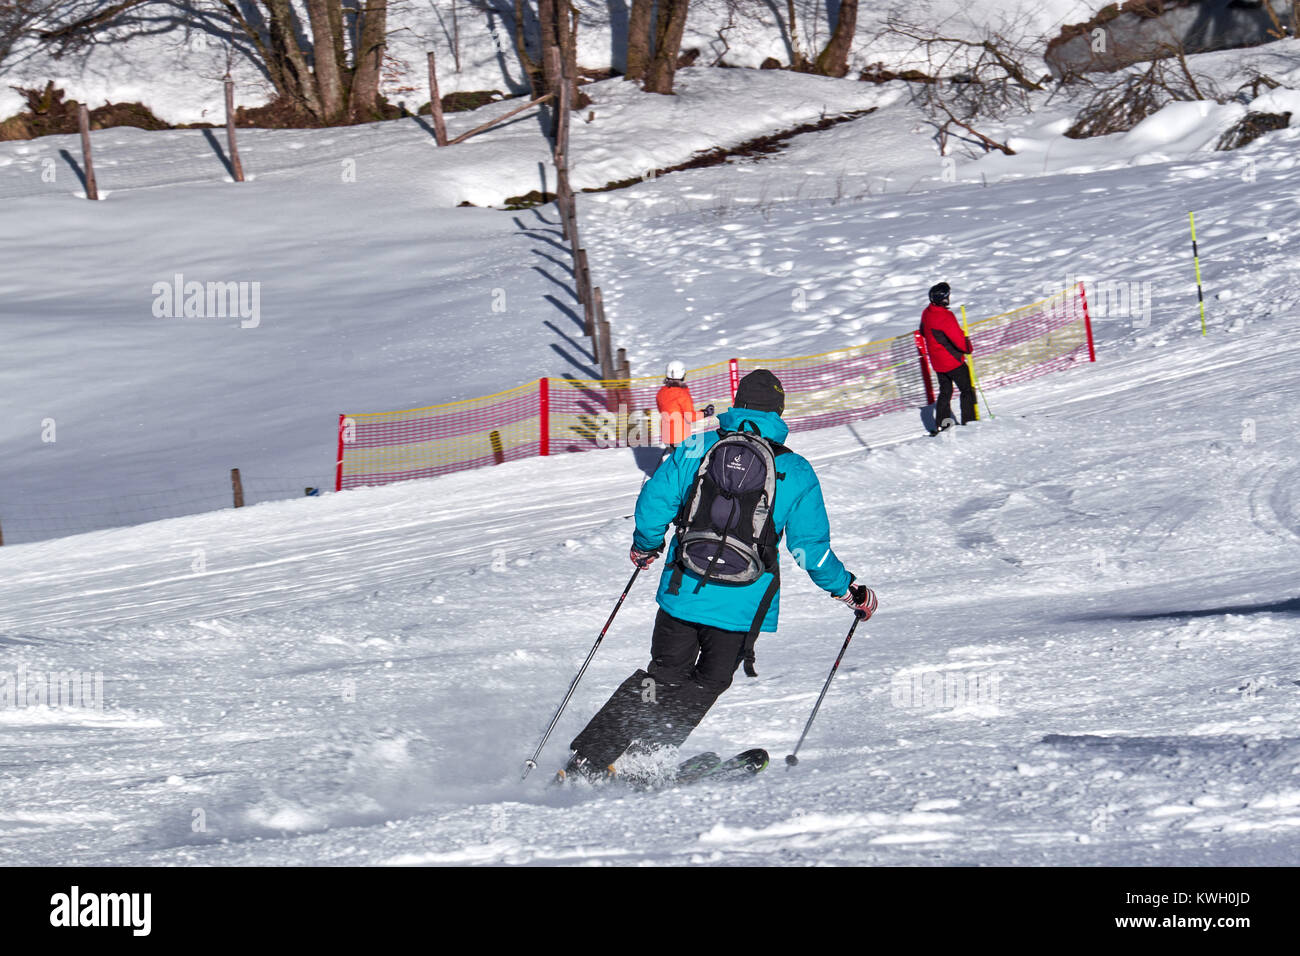 WINTERBERG, GERMANY - FEBRUARY 15, 2017: Man standing downhill  with parallel skies at Ski Carousel Winterberg - Stock Image